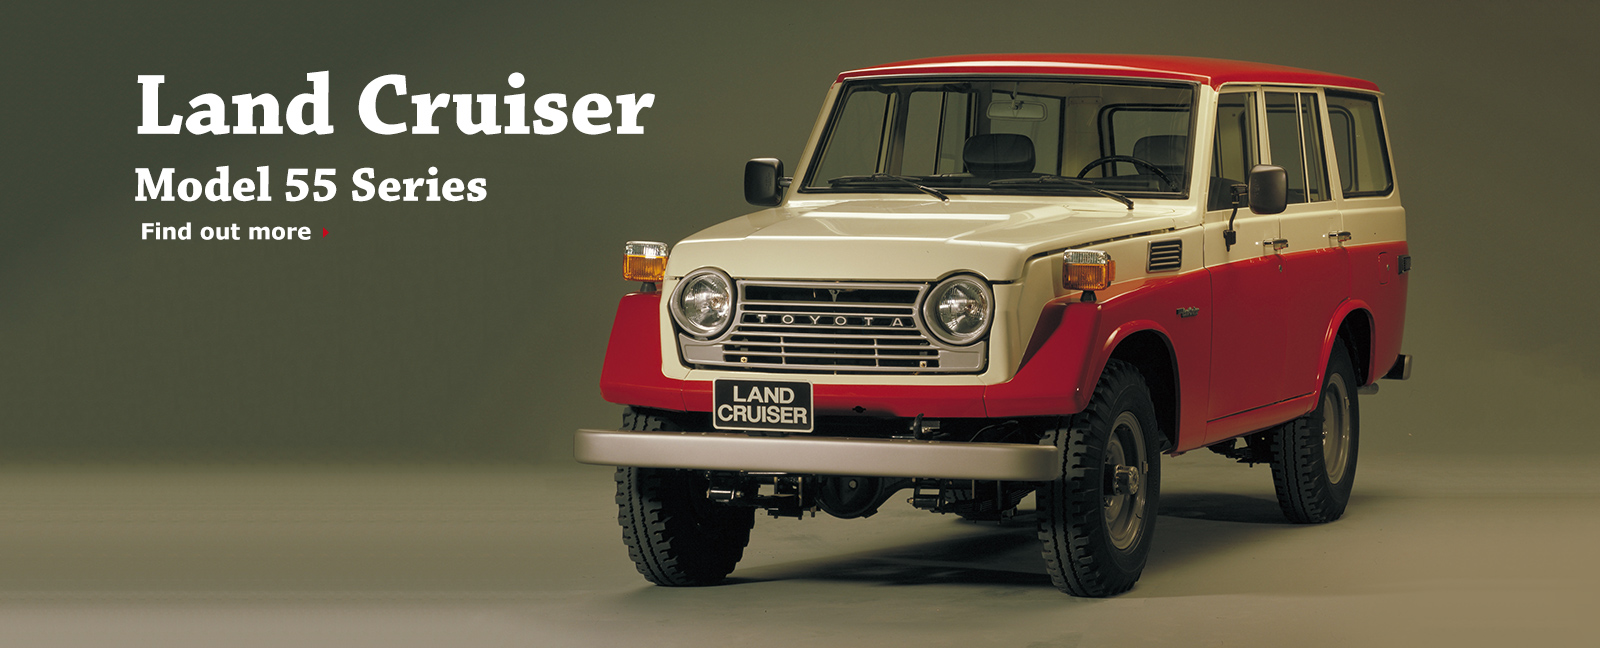 Land Cruiser Model 55 Series Find out more